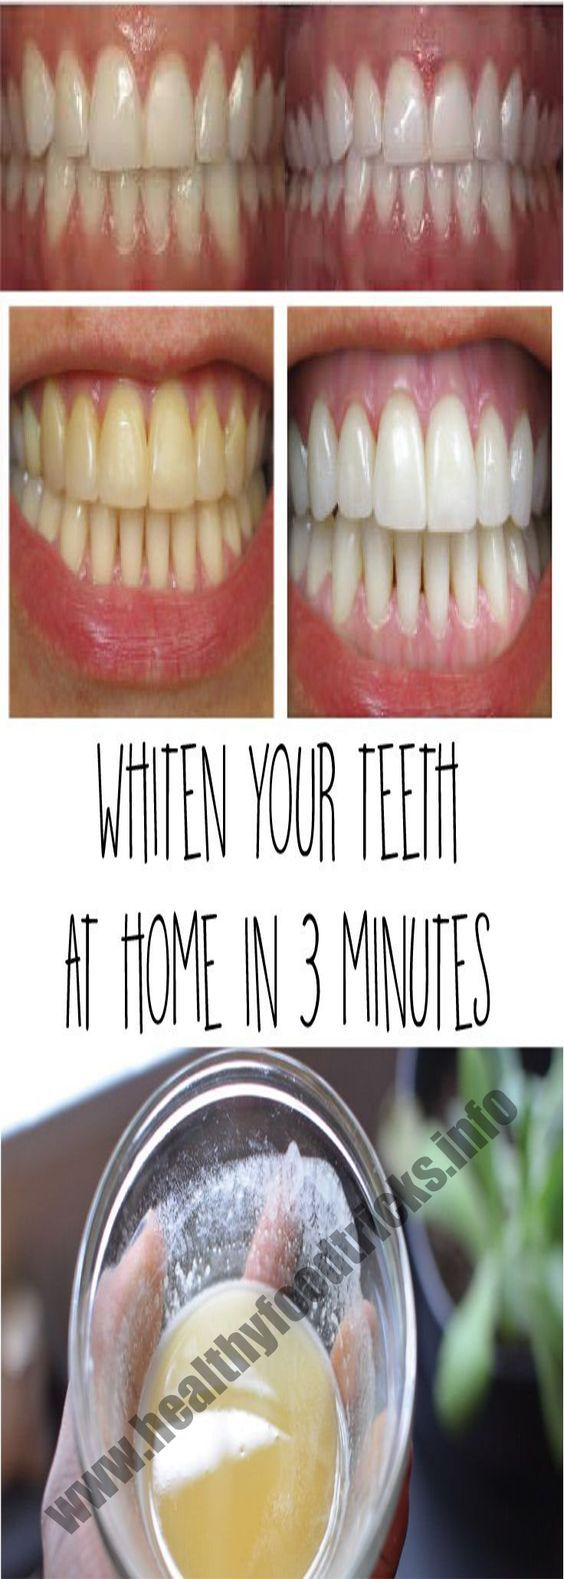 HOW TO DIY NATURAL TEETH WHITENING IN MINUTES AT HOME!